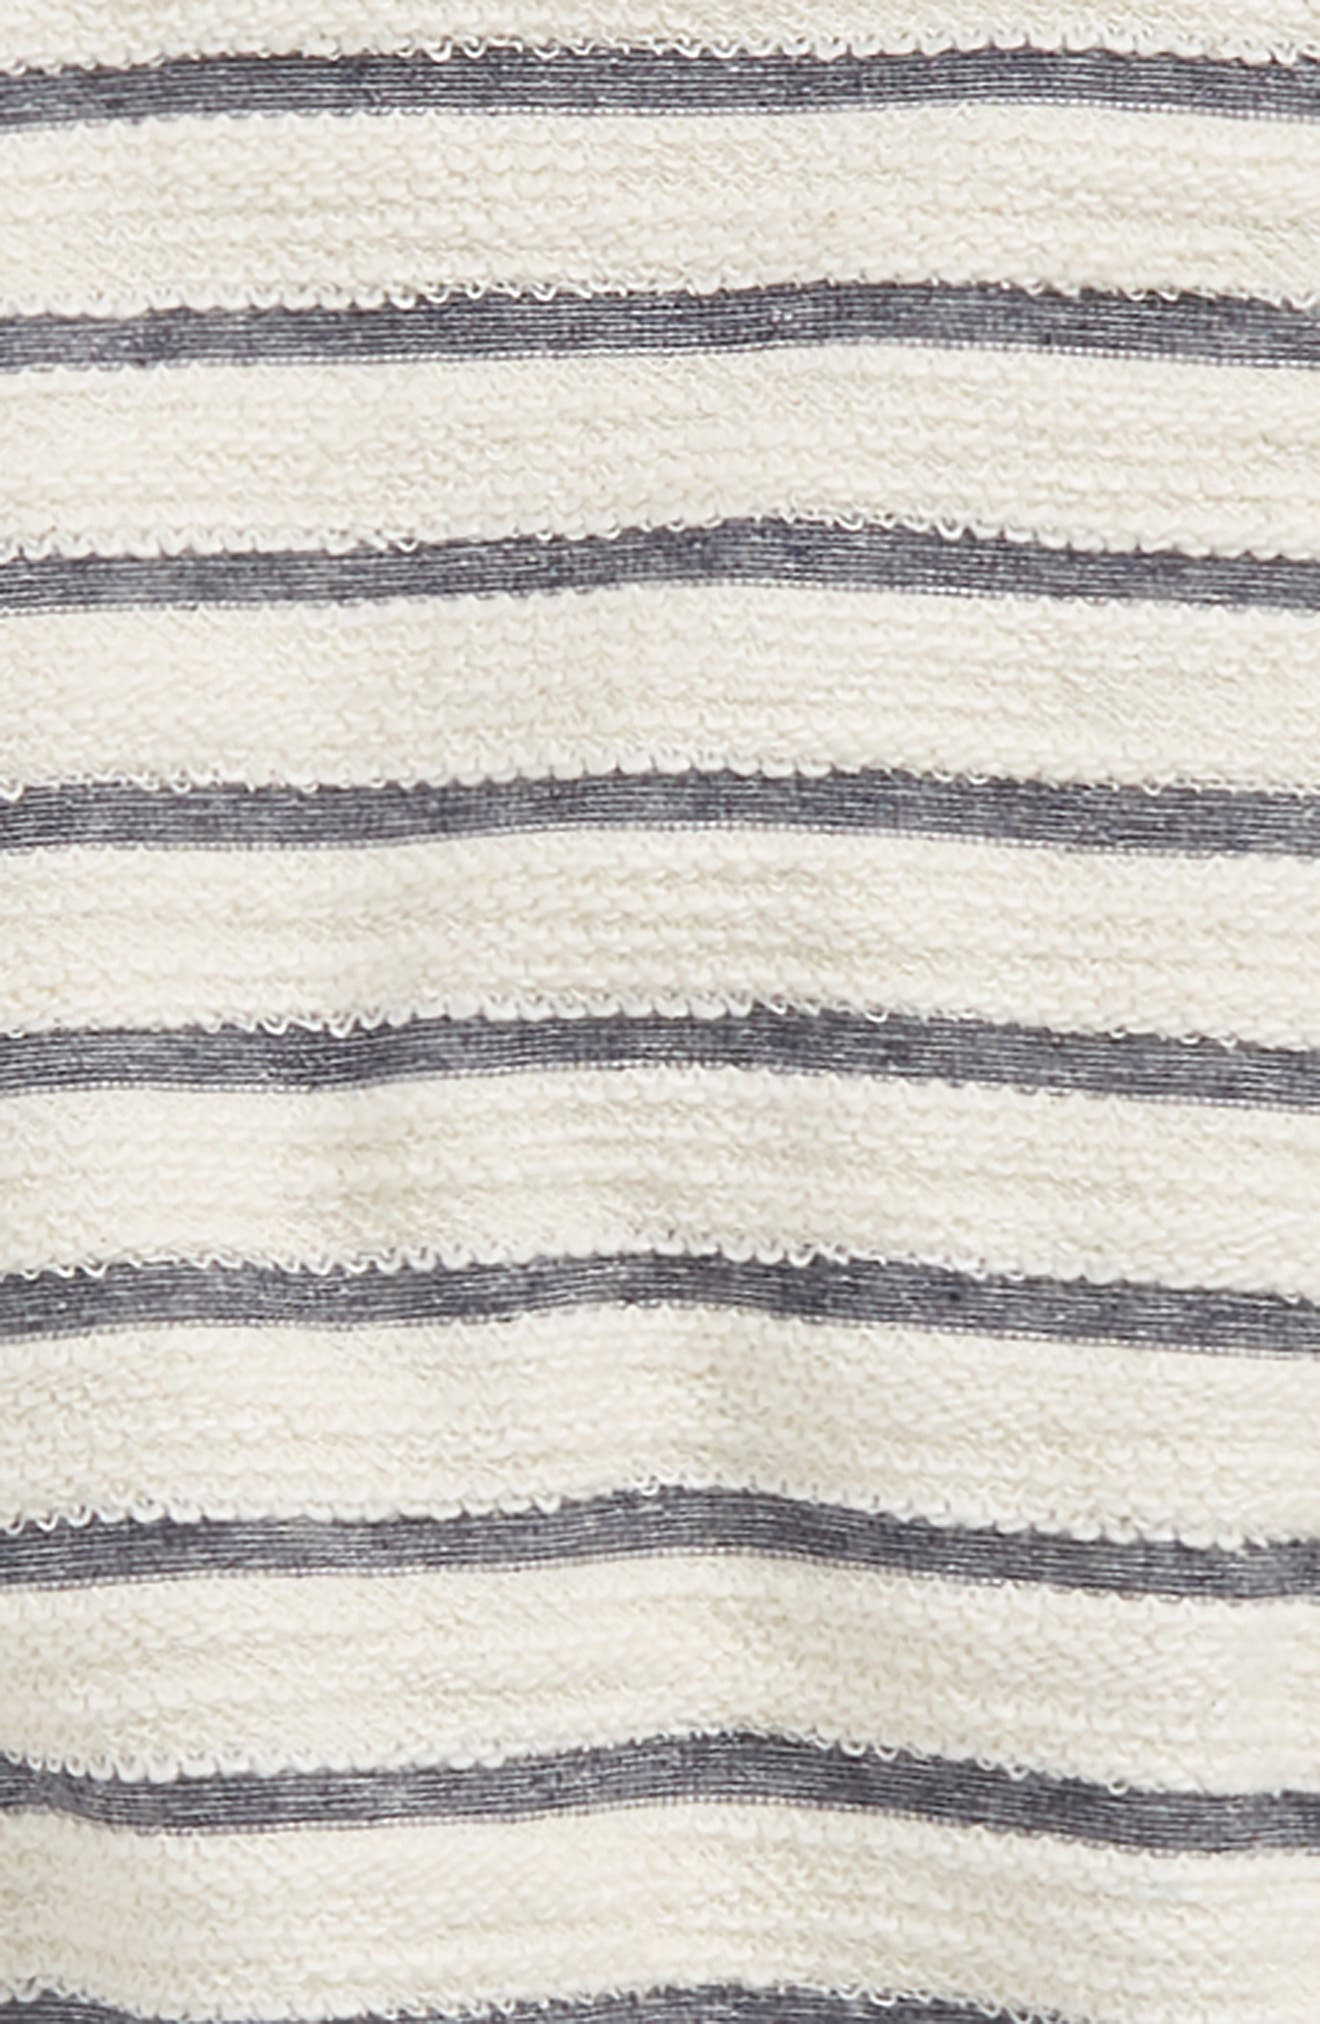 Sleep In Stripe Sweatshirt,                             Alternate thumbnail 2, color,                             White/ Blk Stripe